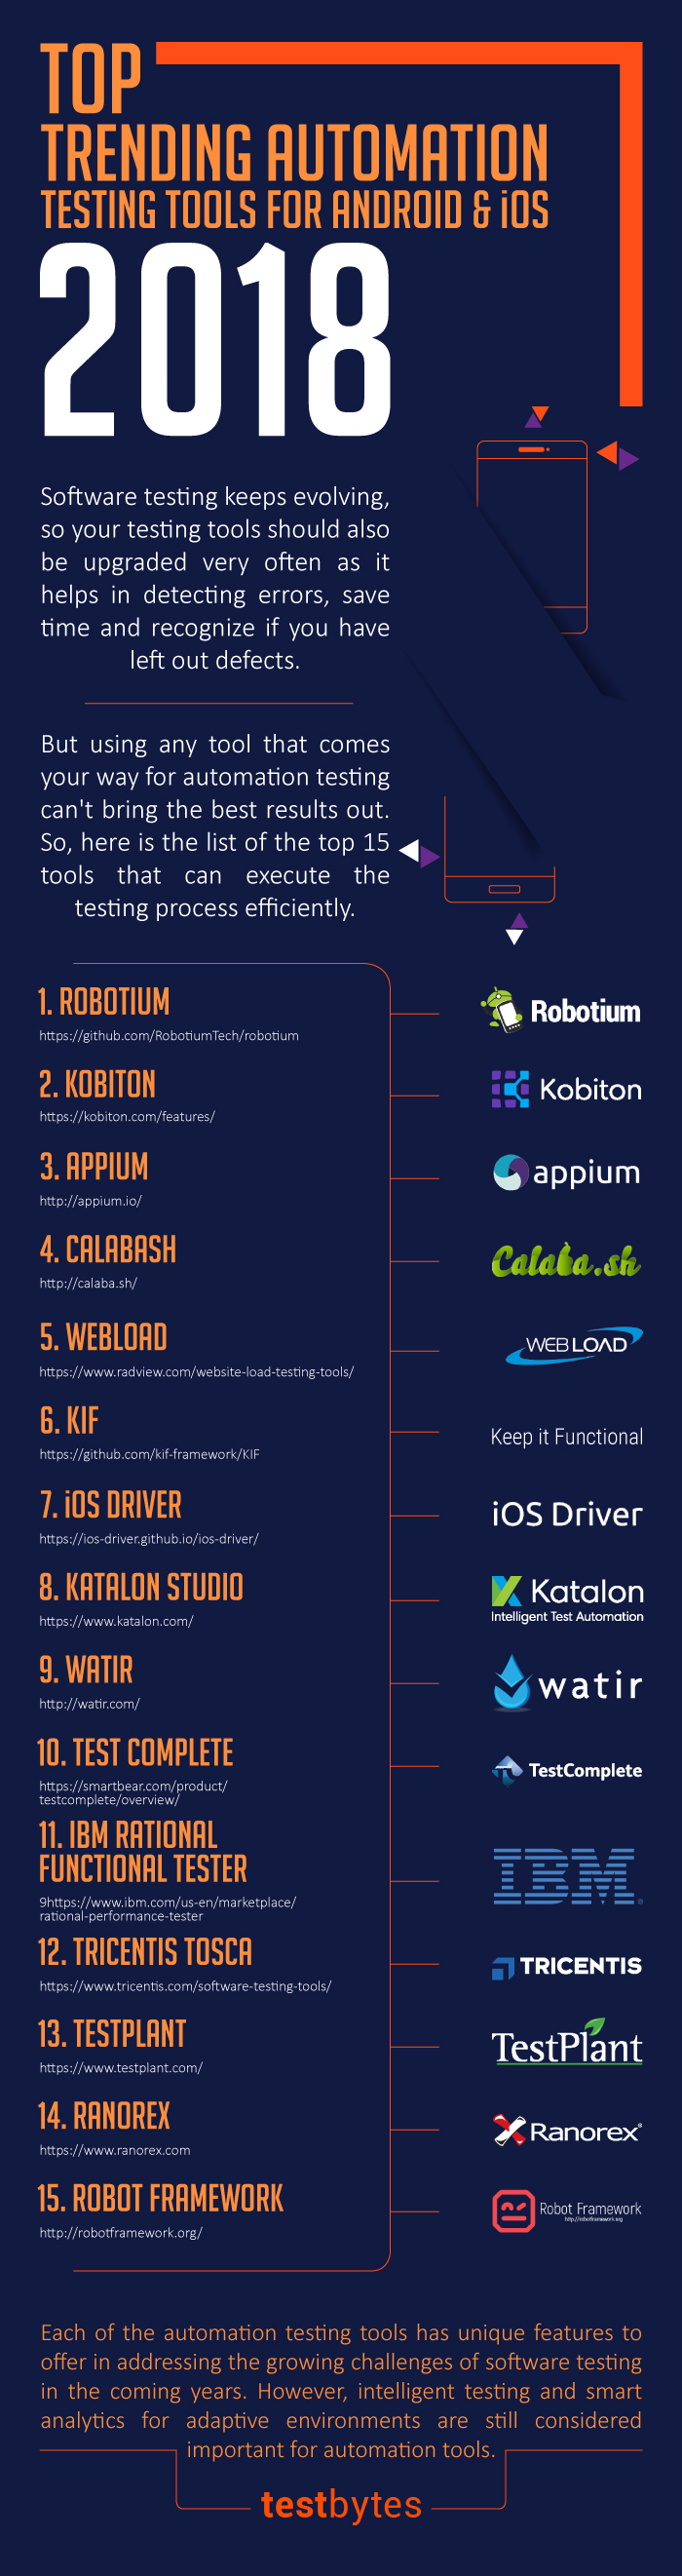 Top-Automation-Testing-Tools-for-Android-and-iOS-apps-infographic-plaza